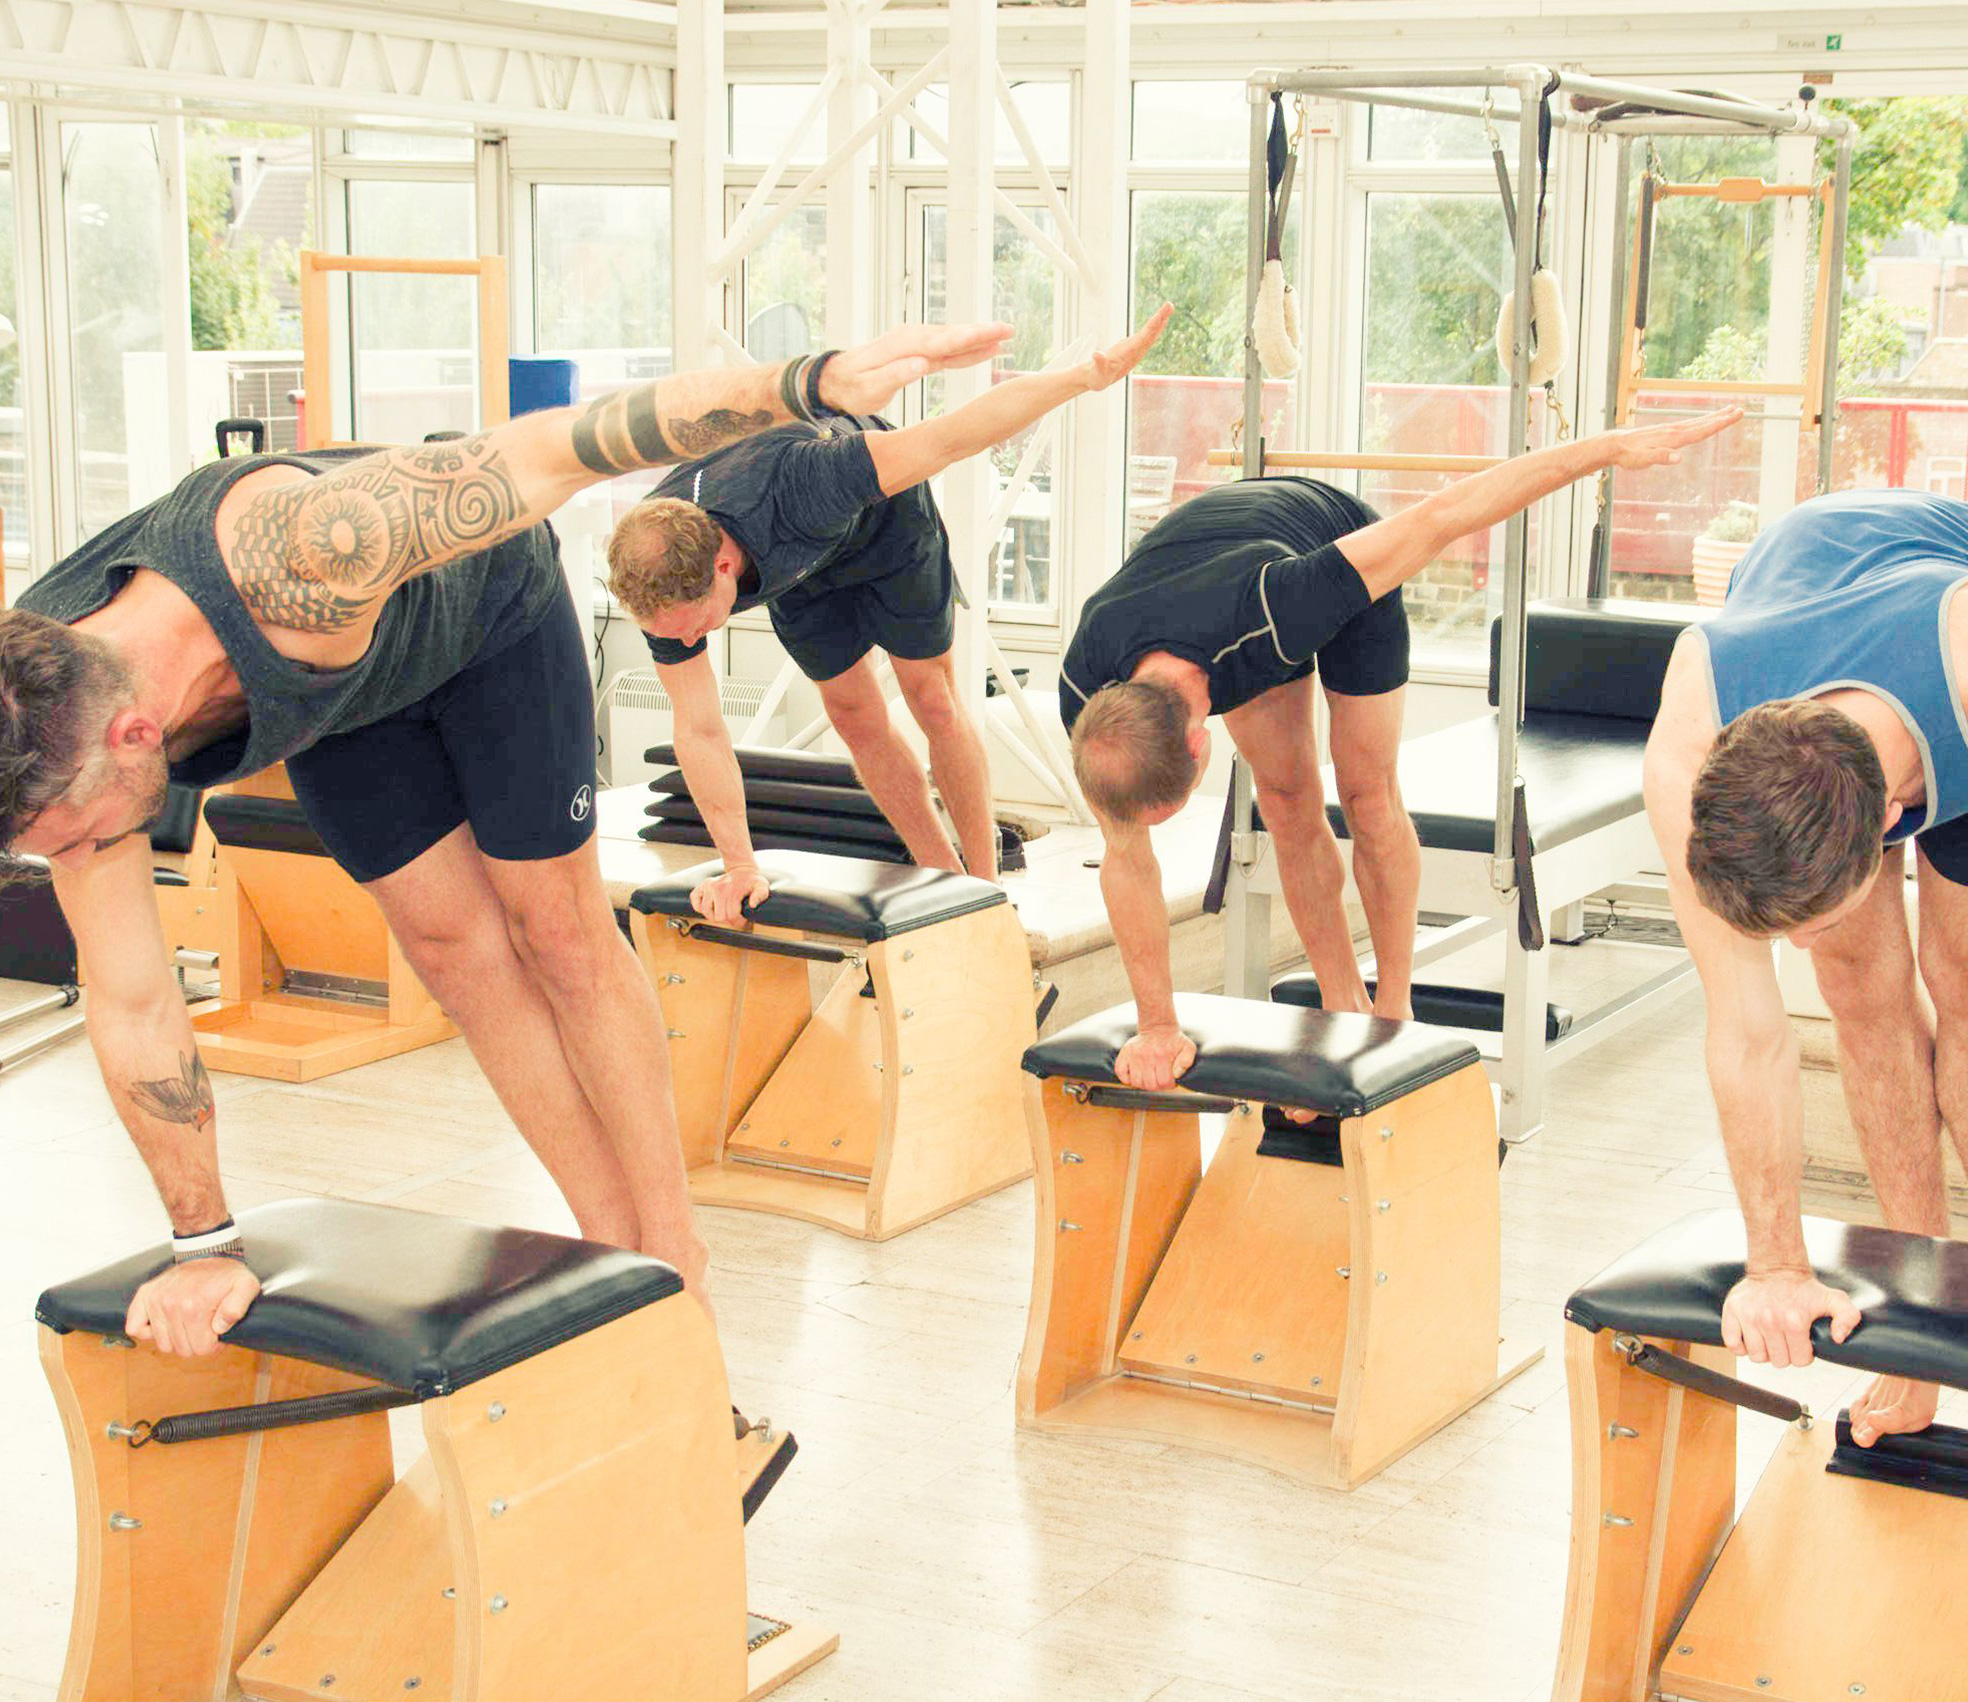 Barrels and Chairs Class (from £28) - This is a challenging small group workout, in which you will develop stamina, balance, concentration and stability using the smaller apparatus in the studio.